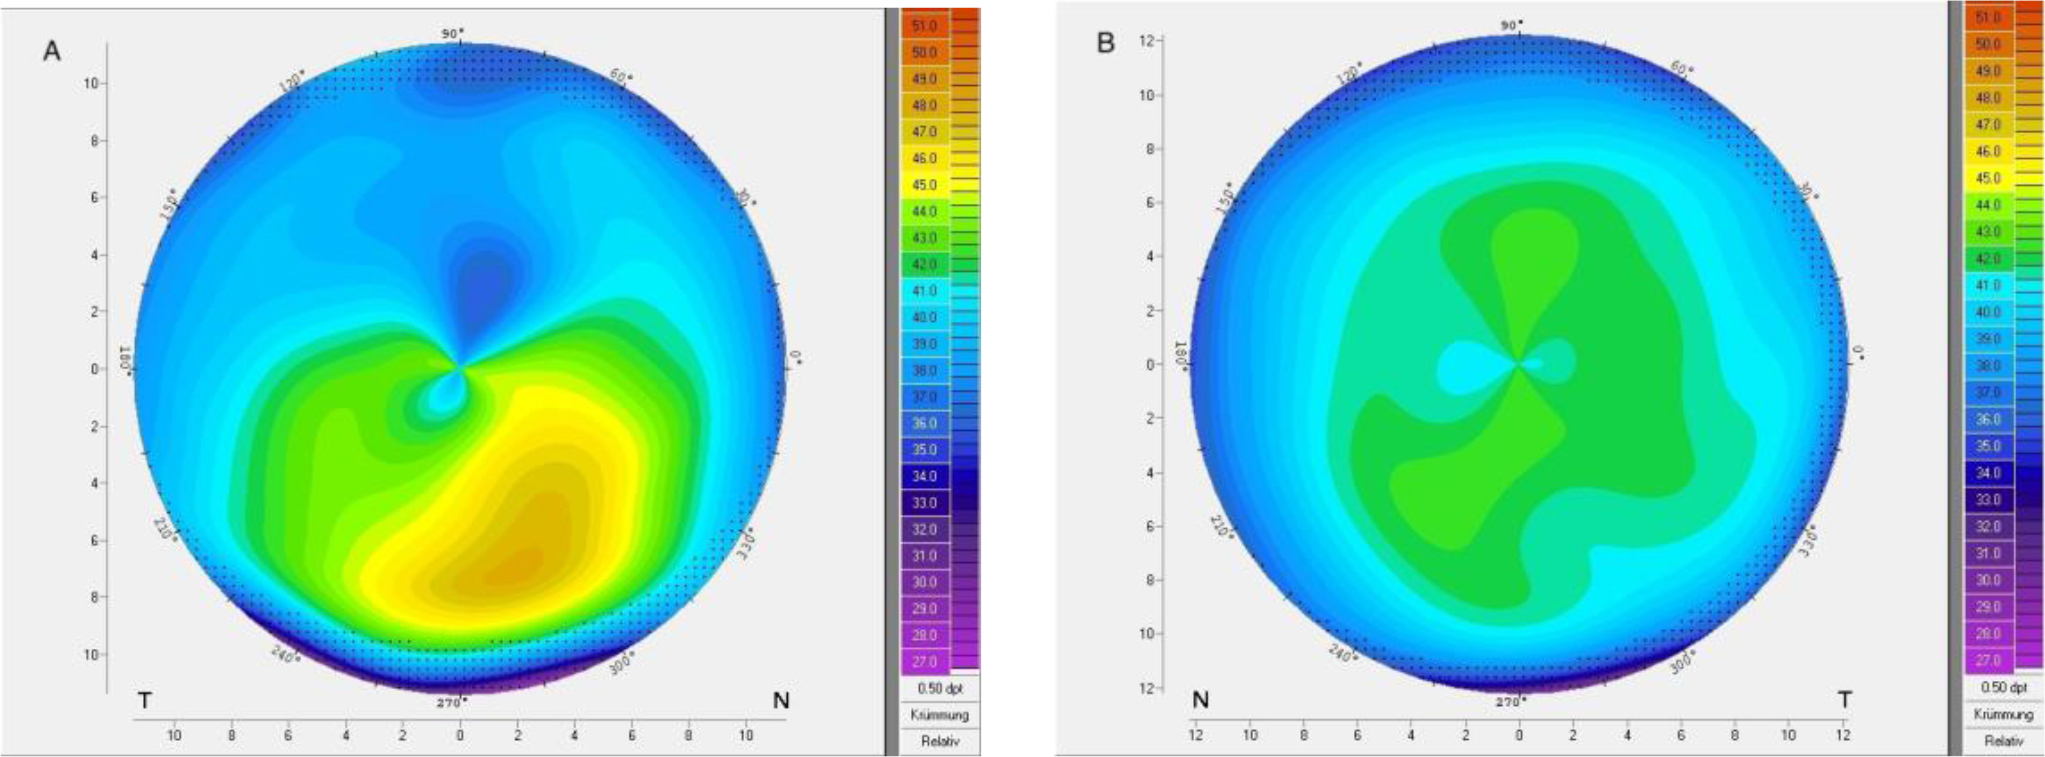 Corneal topography of patient 9 with very asymmetric keratoconus showing (A) ectasia and (B) regular topography in the fellow eye.